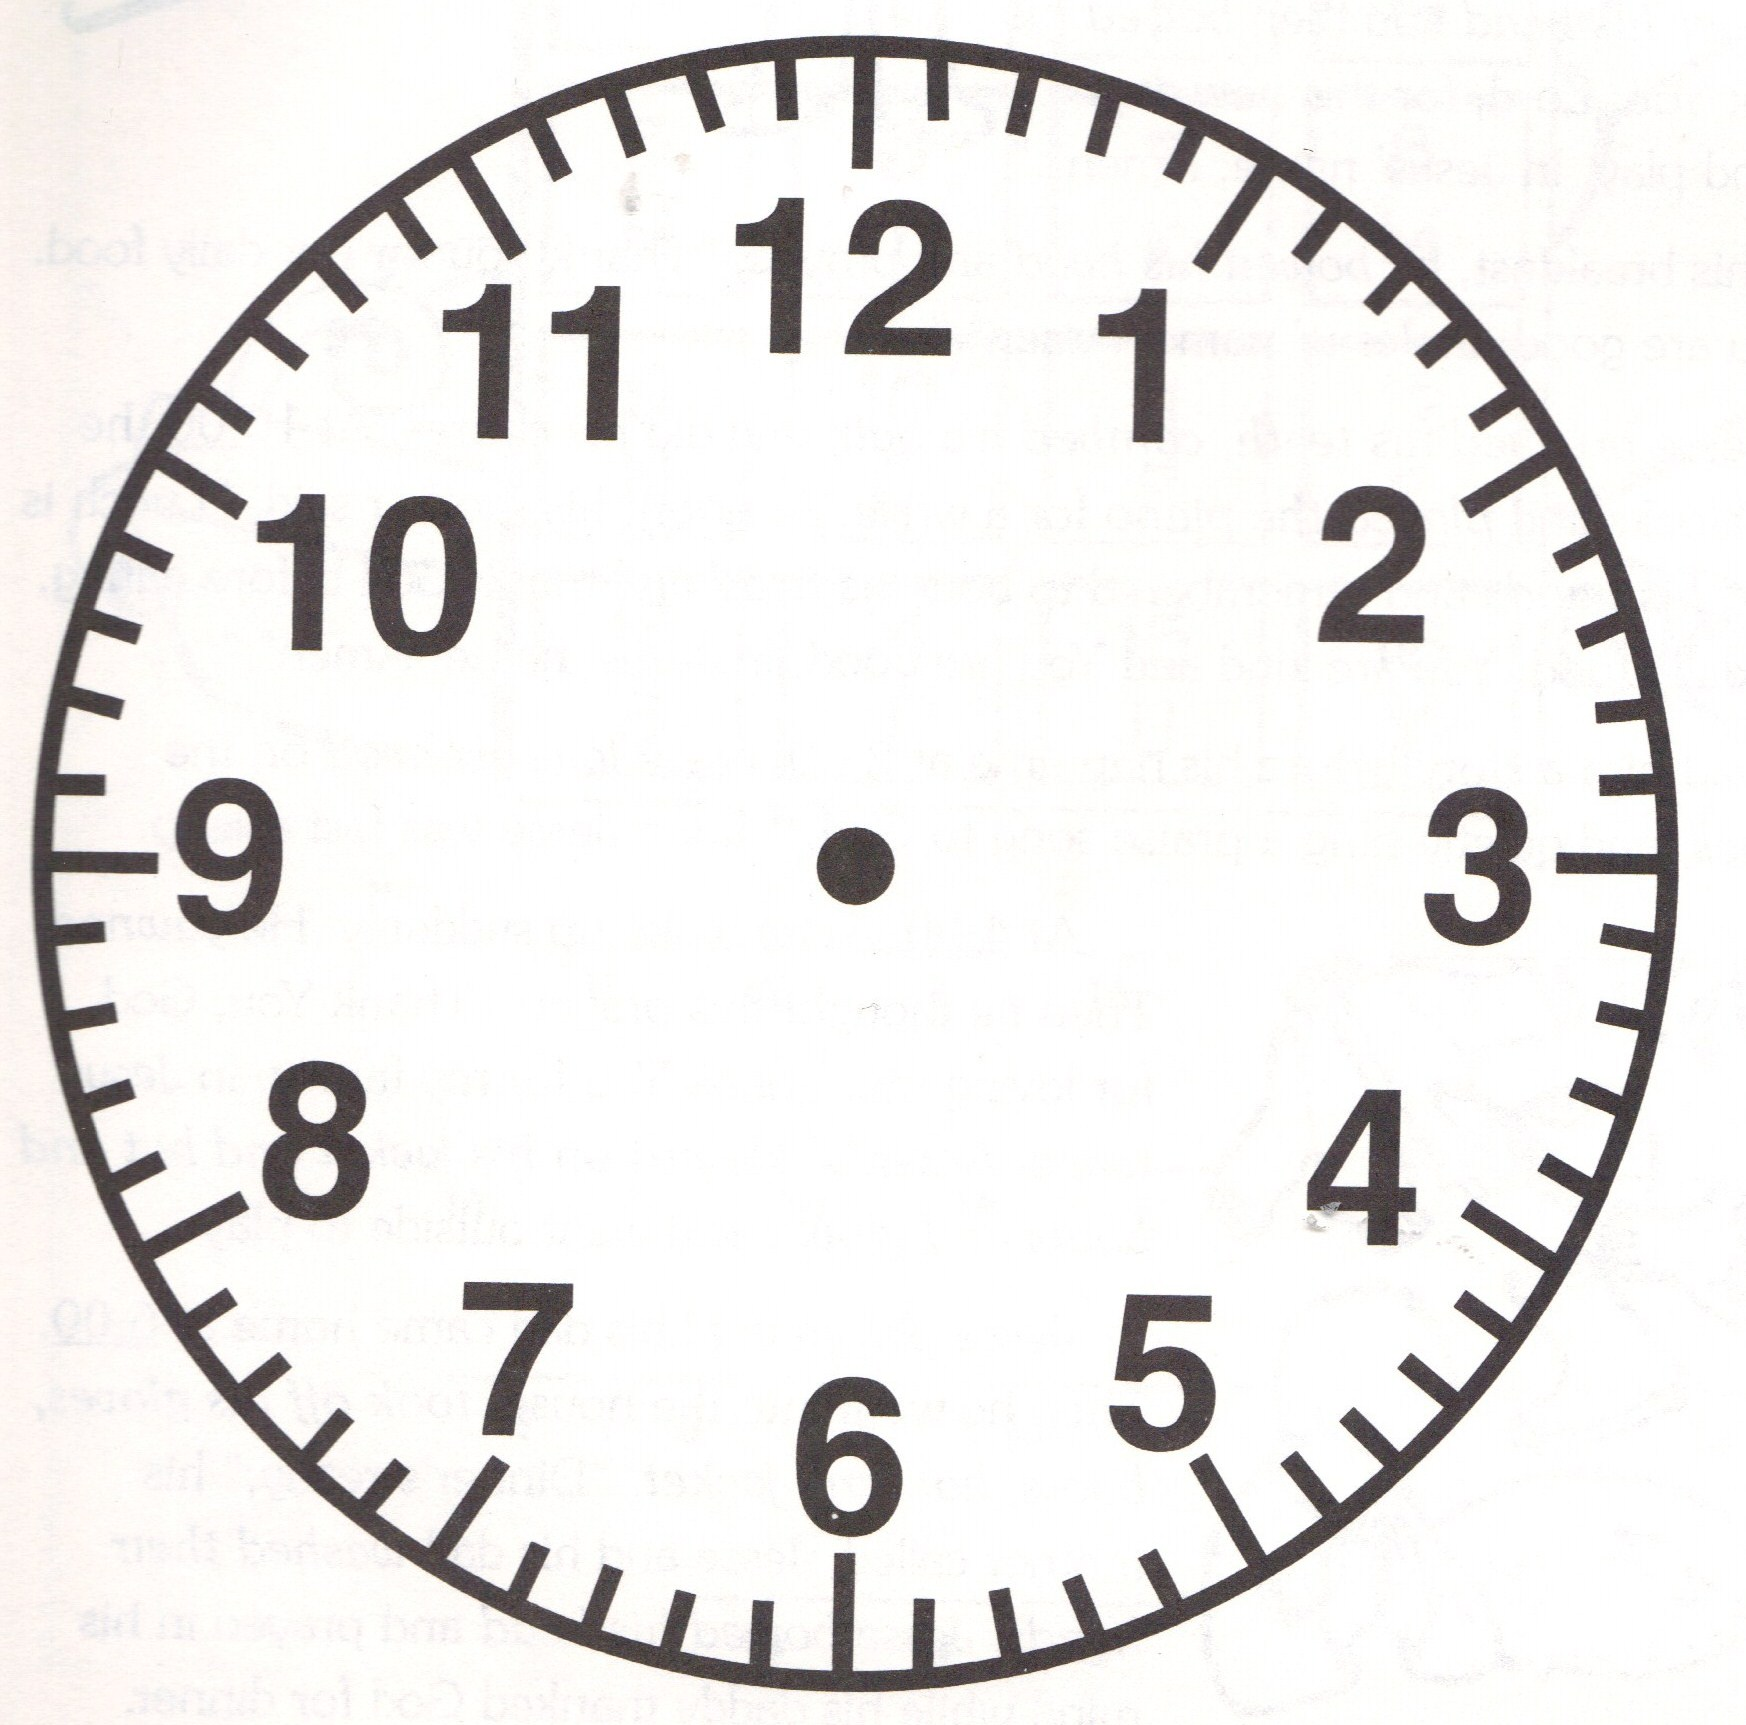 Printable Clock Face Without Hands